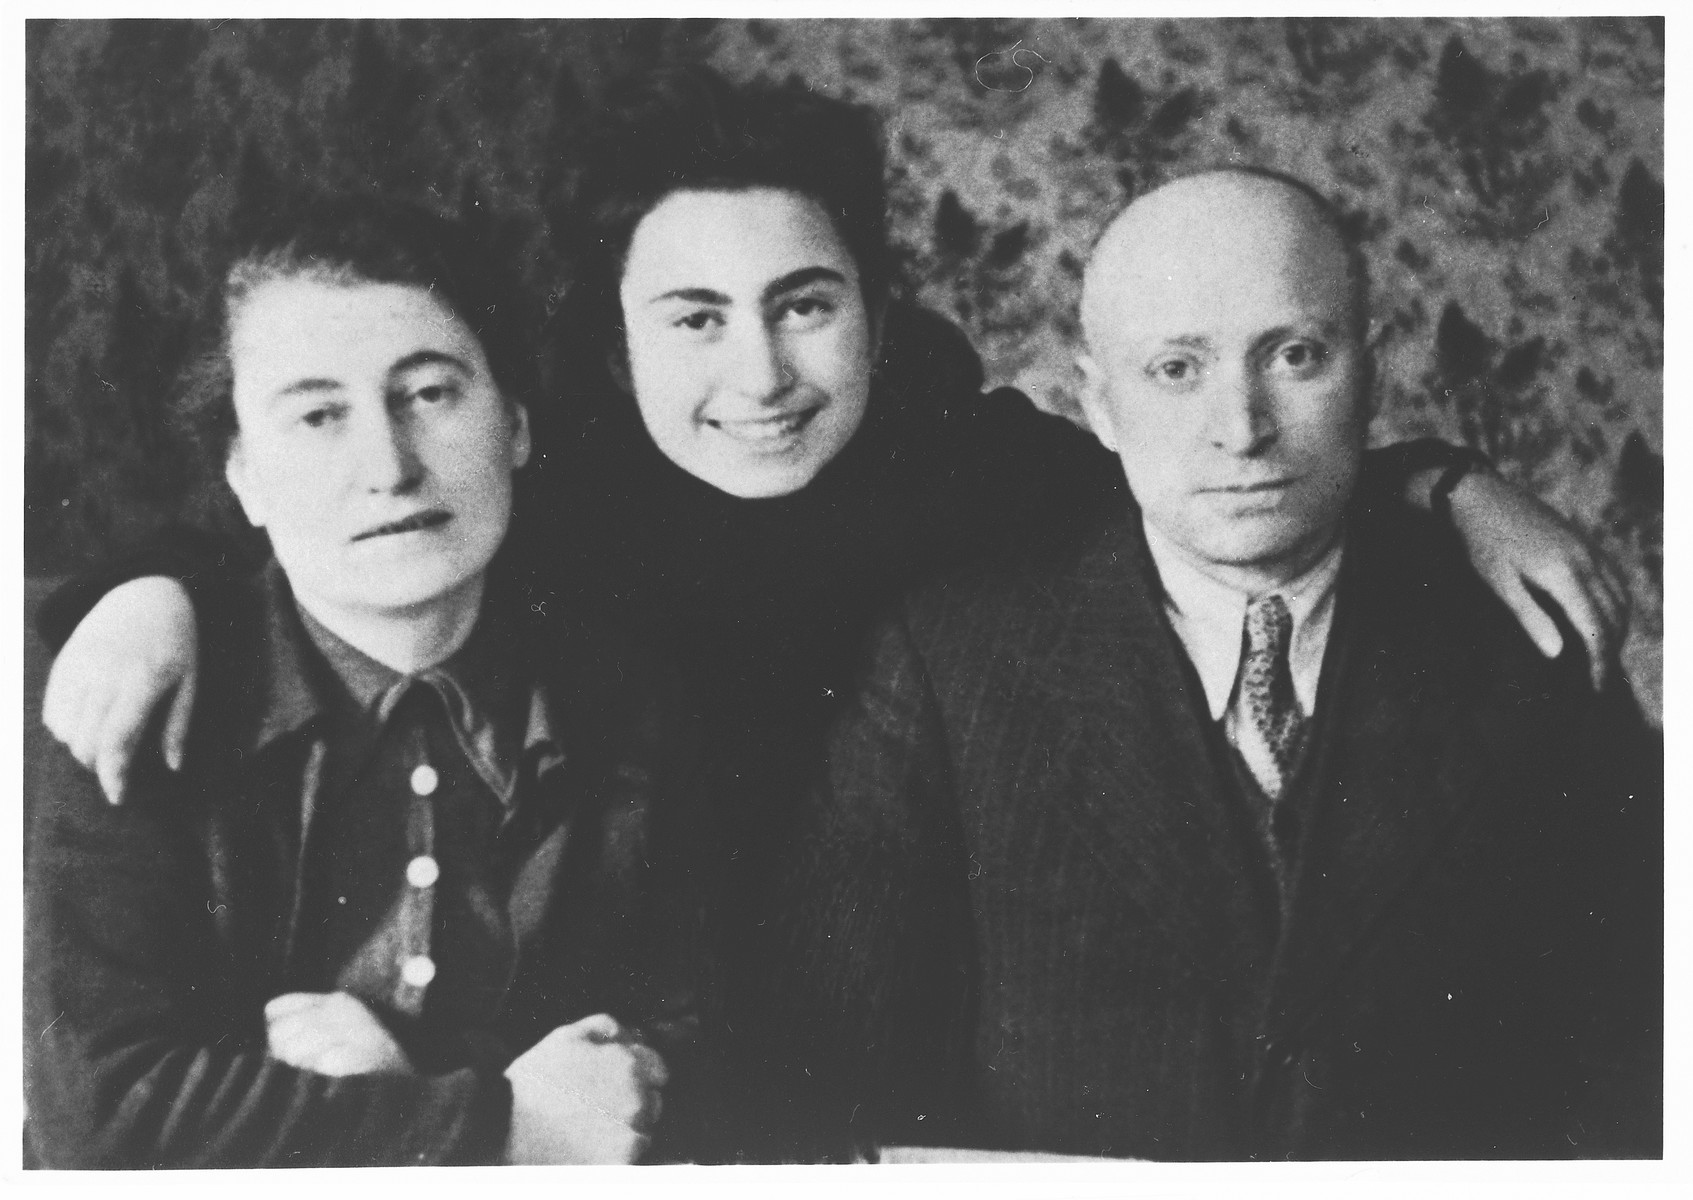 Portrait of the Garber family in the Warsaw ghetto.  Pictured are Aron, Bronia and Frajda Garber.